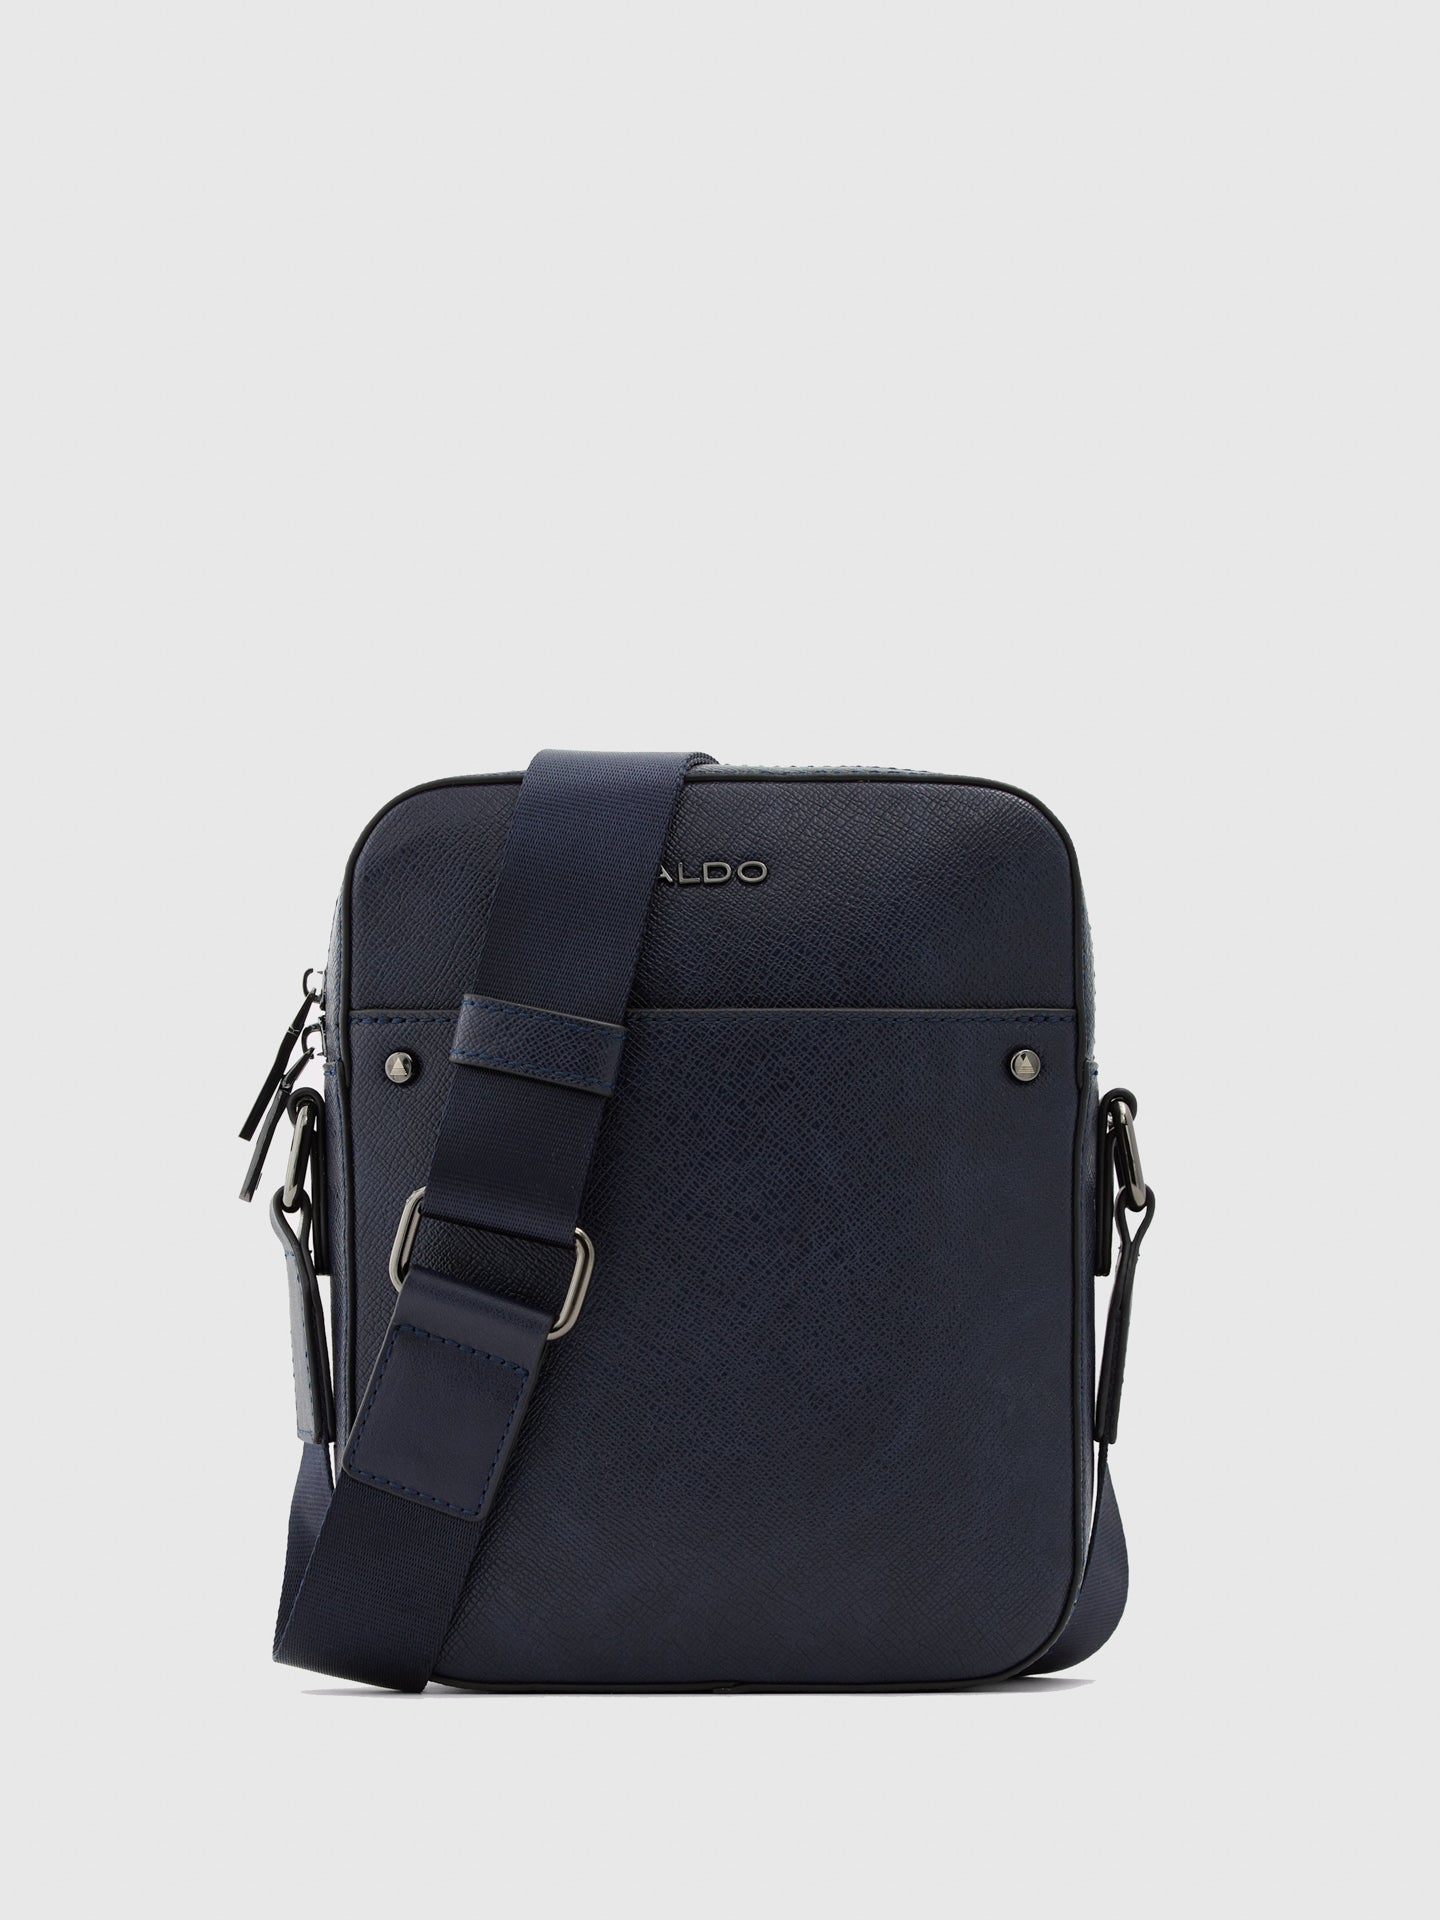 Aldo Navy Crossbody Bag